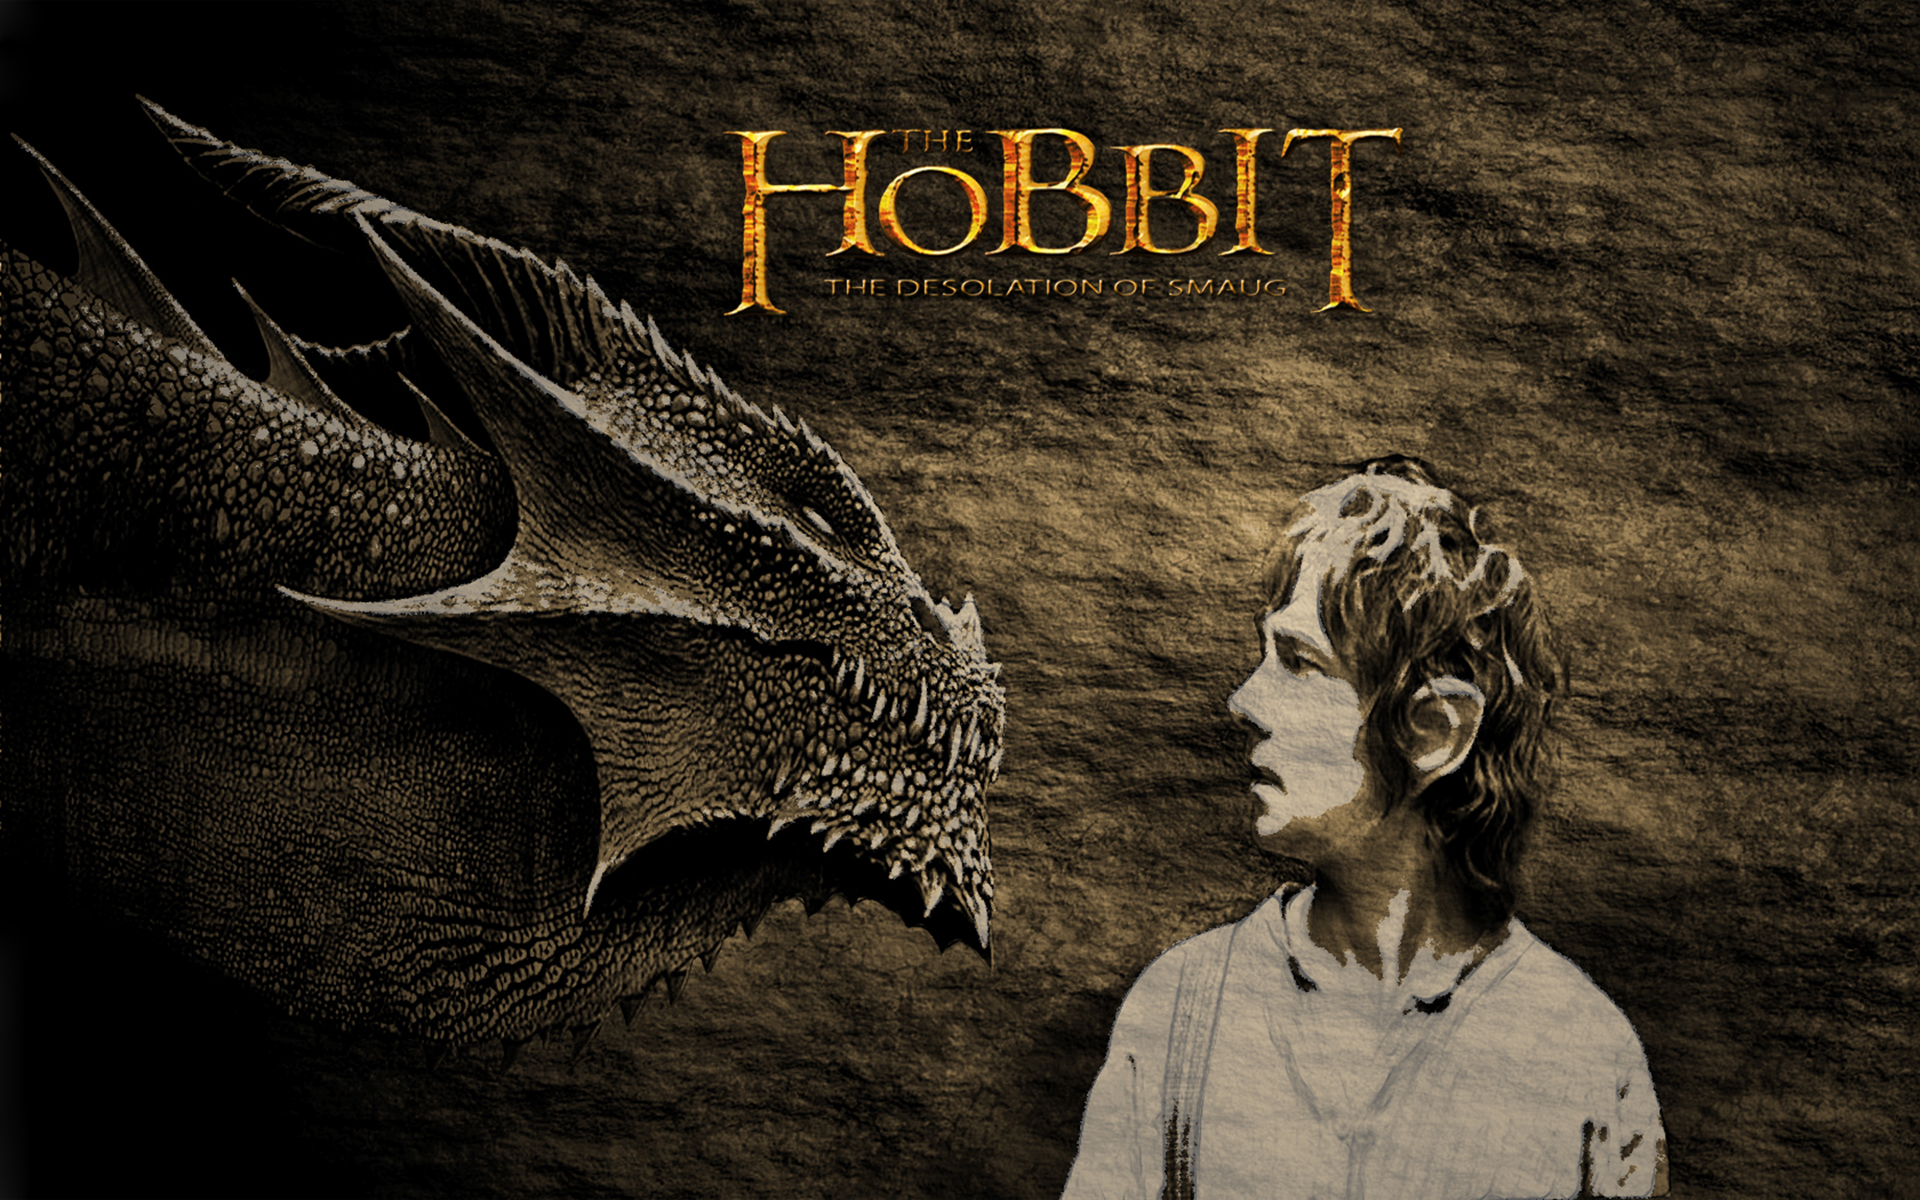 Smaug hd phone wallpaper   Hobbit desolation of smaug wallpaper 1920x1200